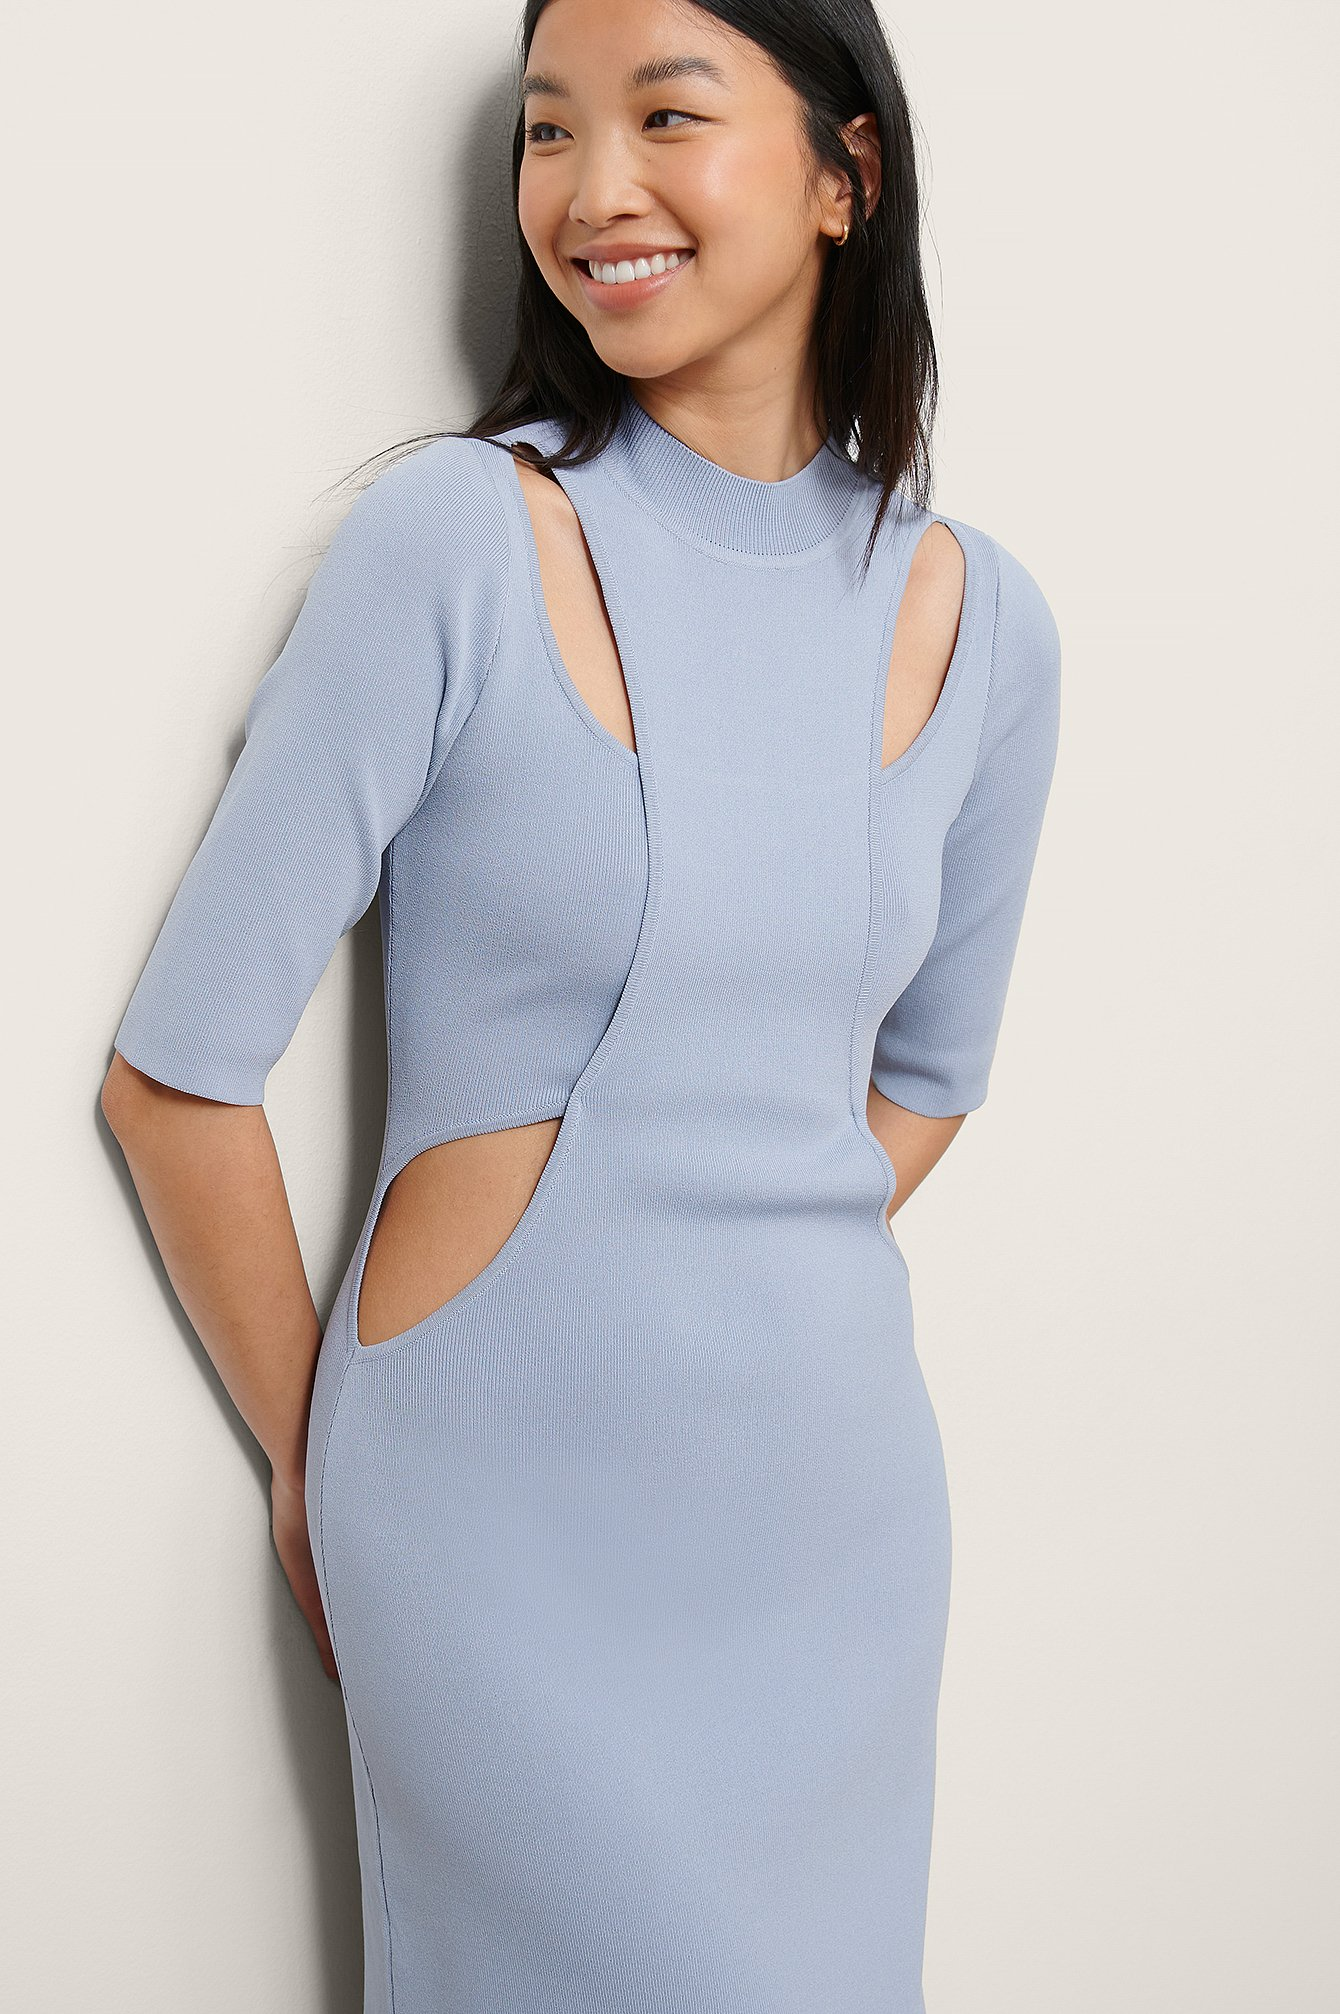 Dusty Blue Knitted Cut Out Dress